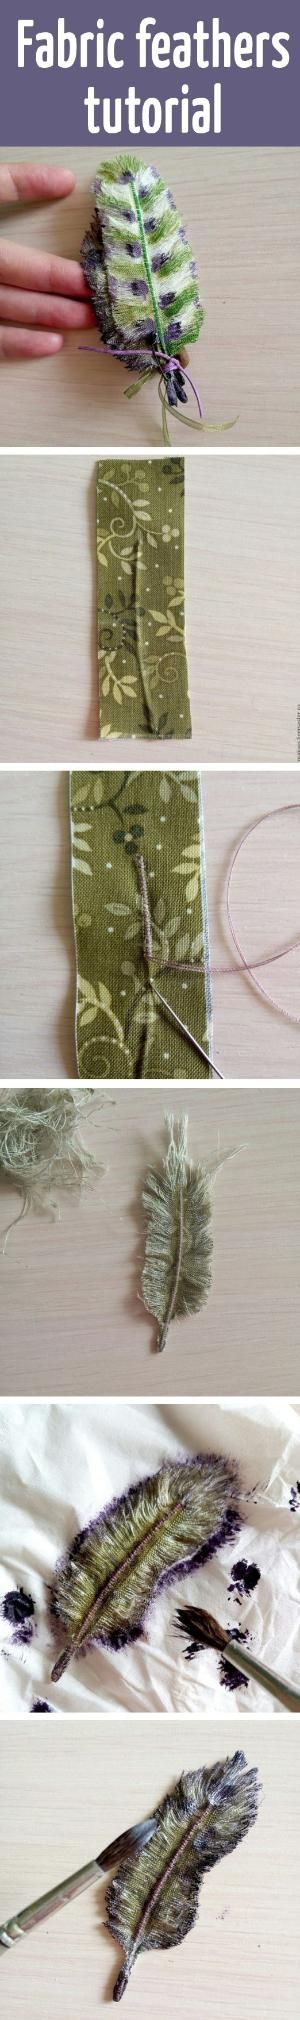 Fabric feathers tutorial by Michela Lod